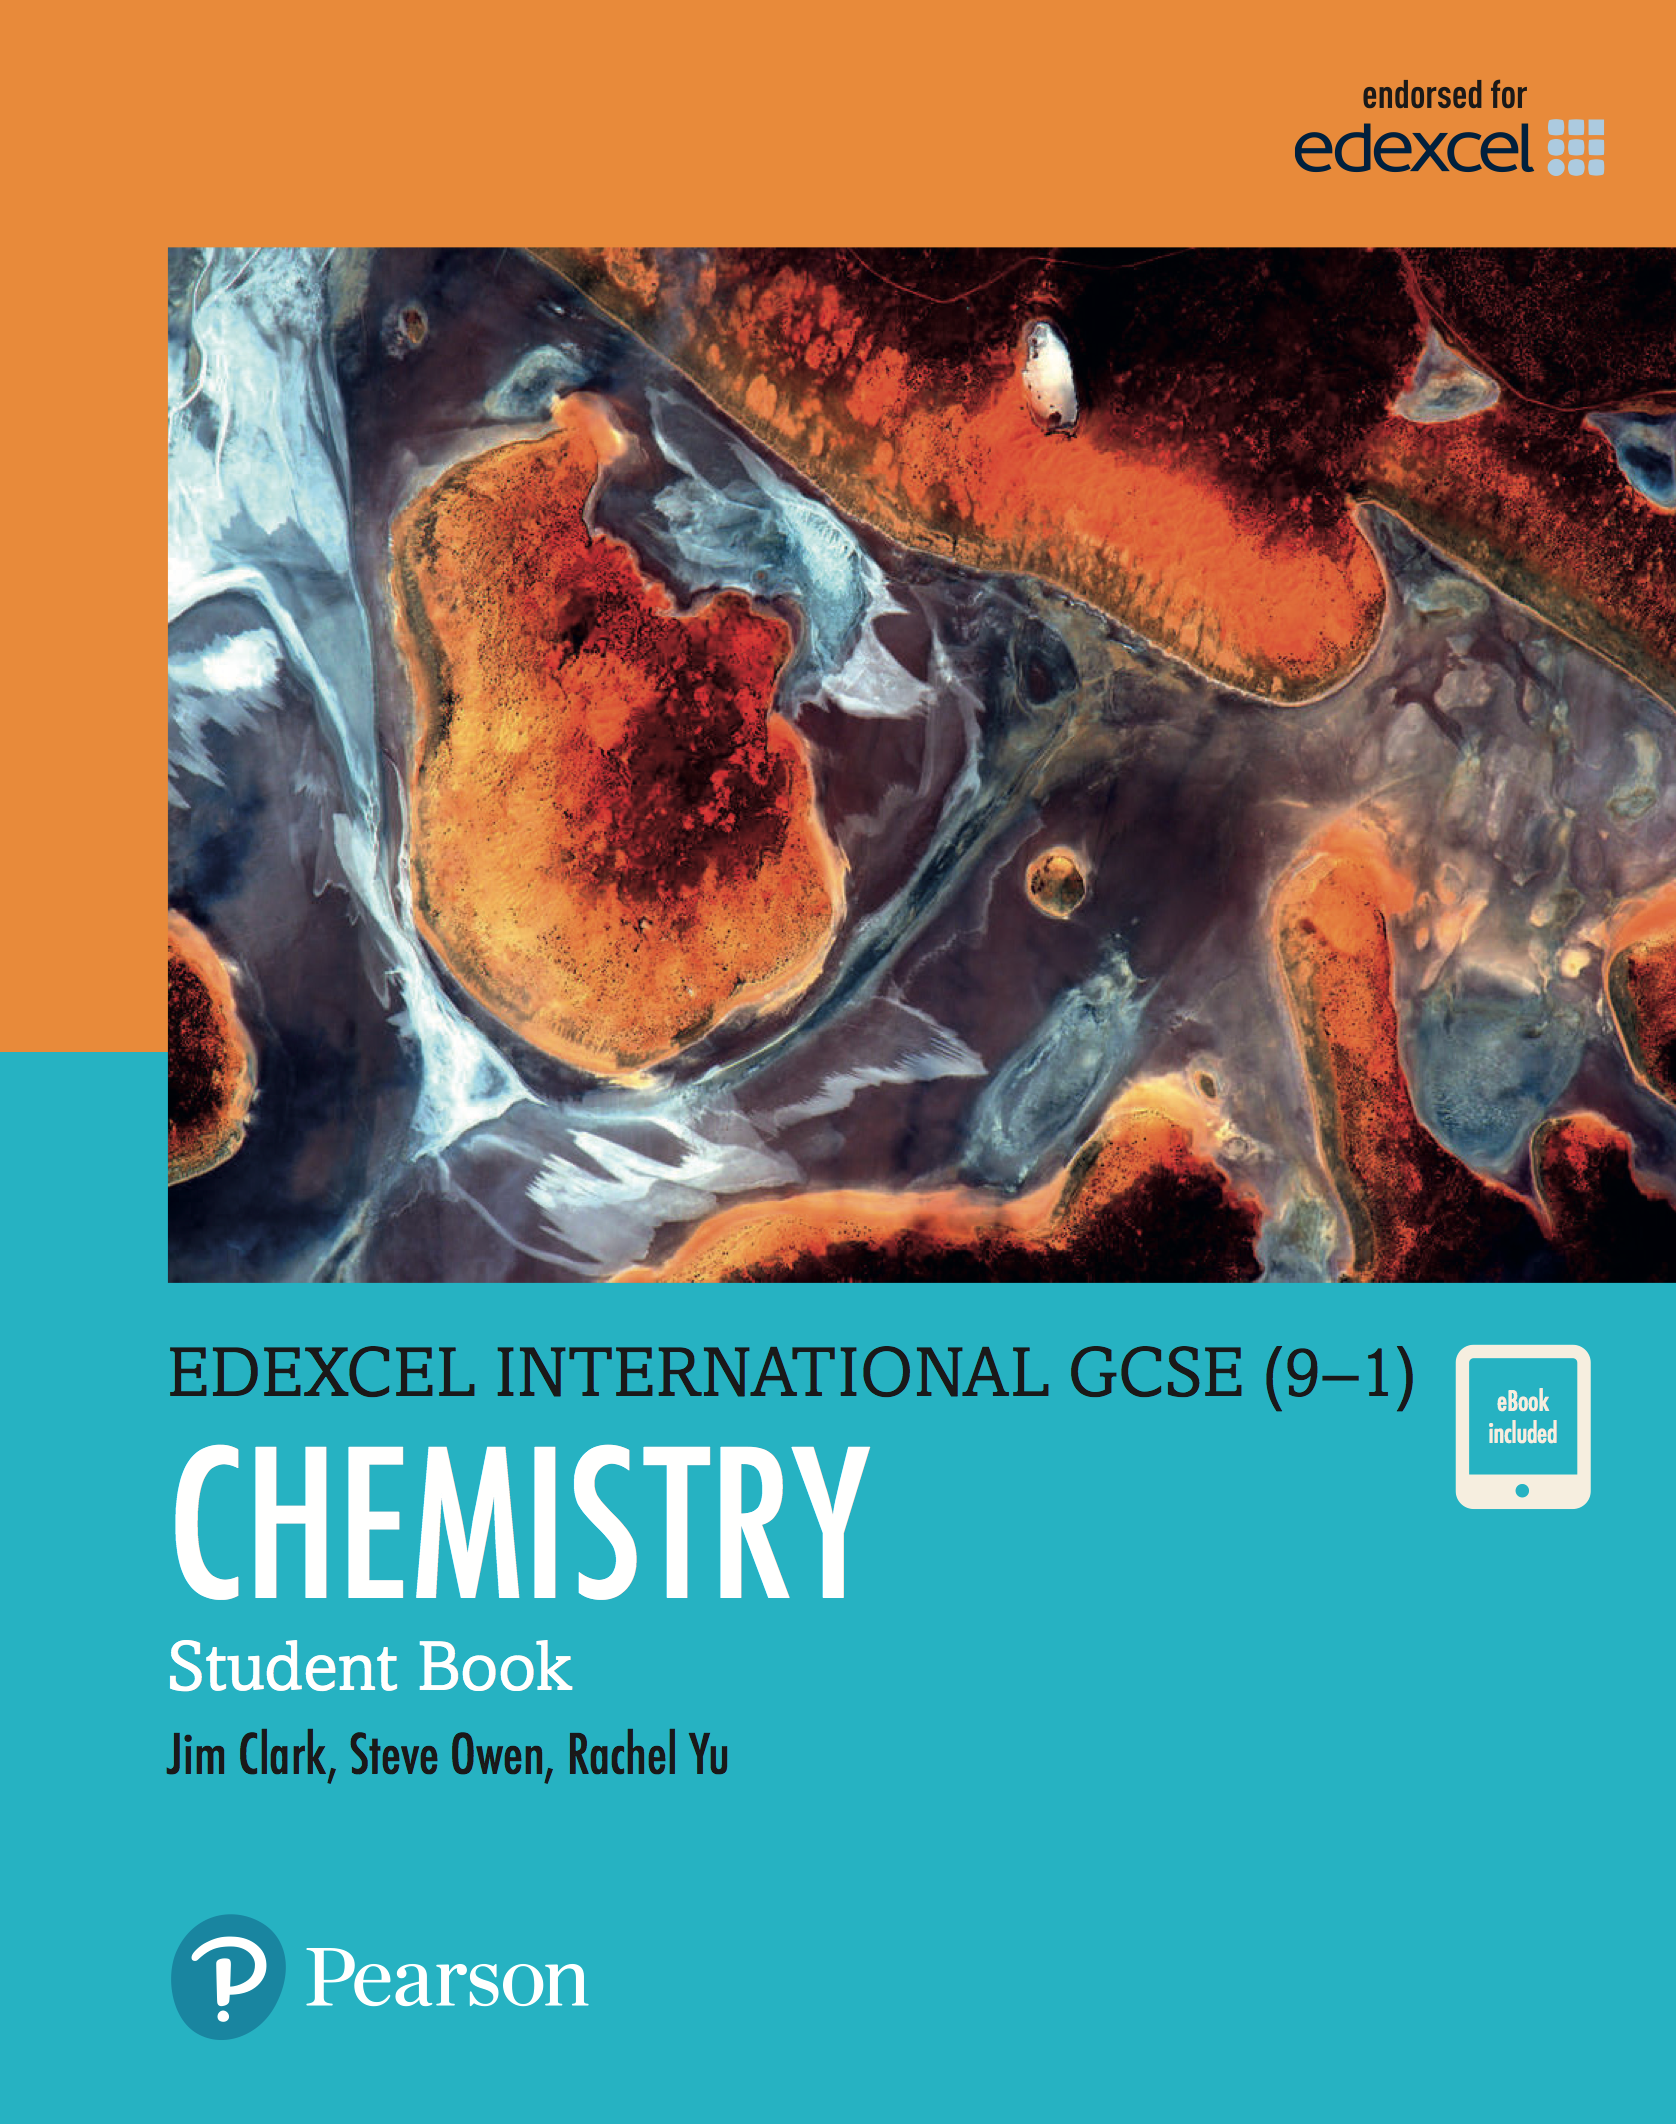 Chemistry Student Book sample